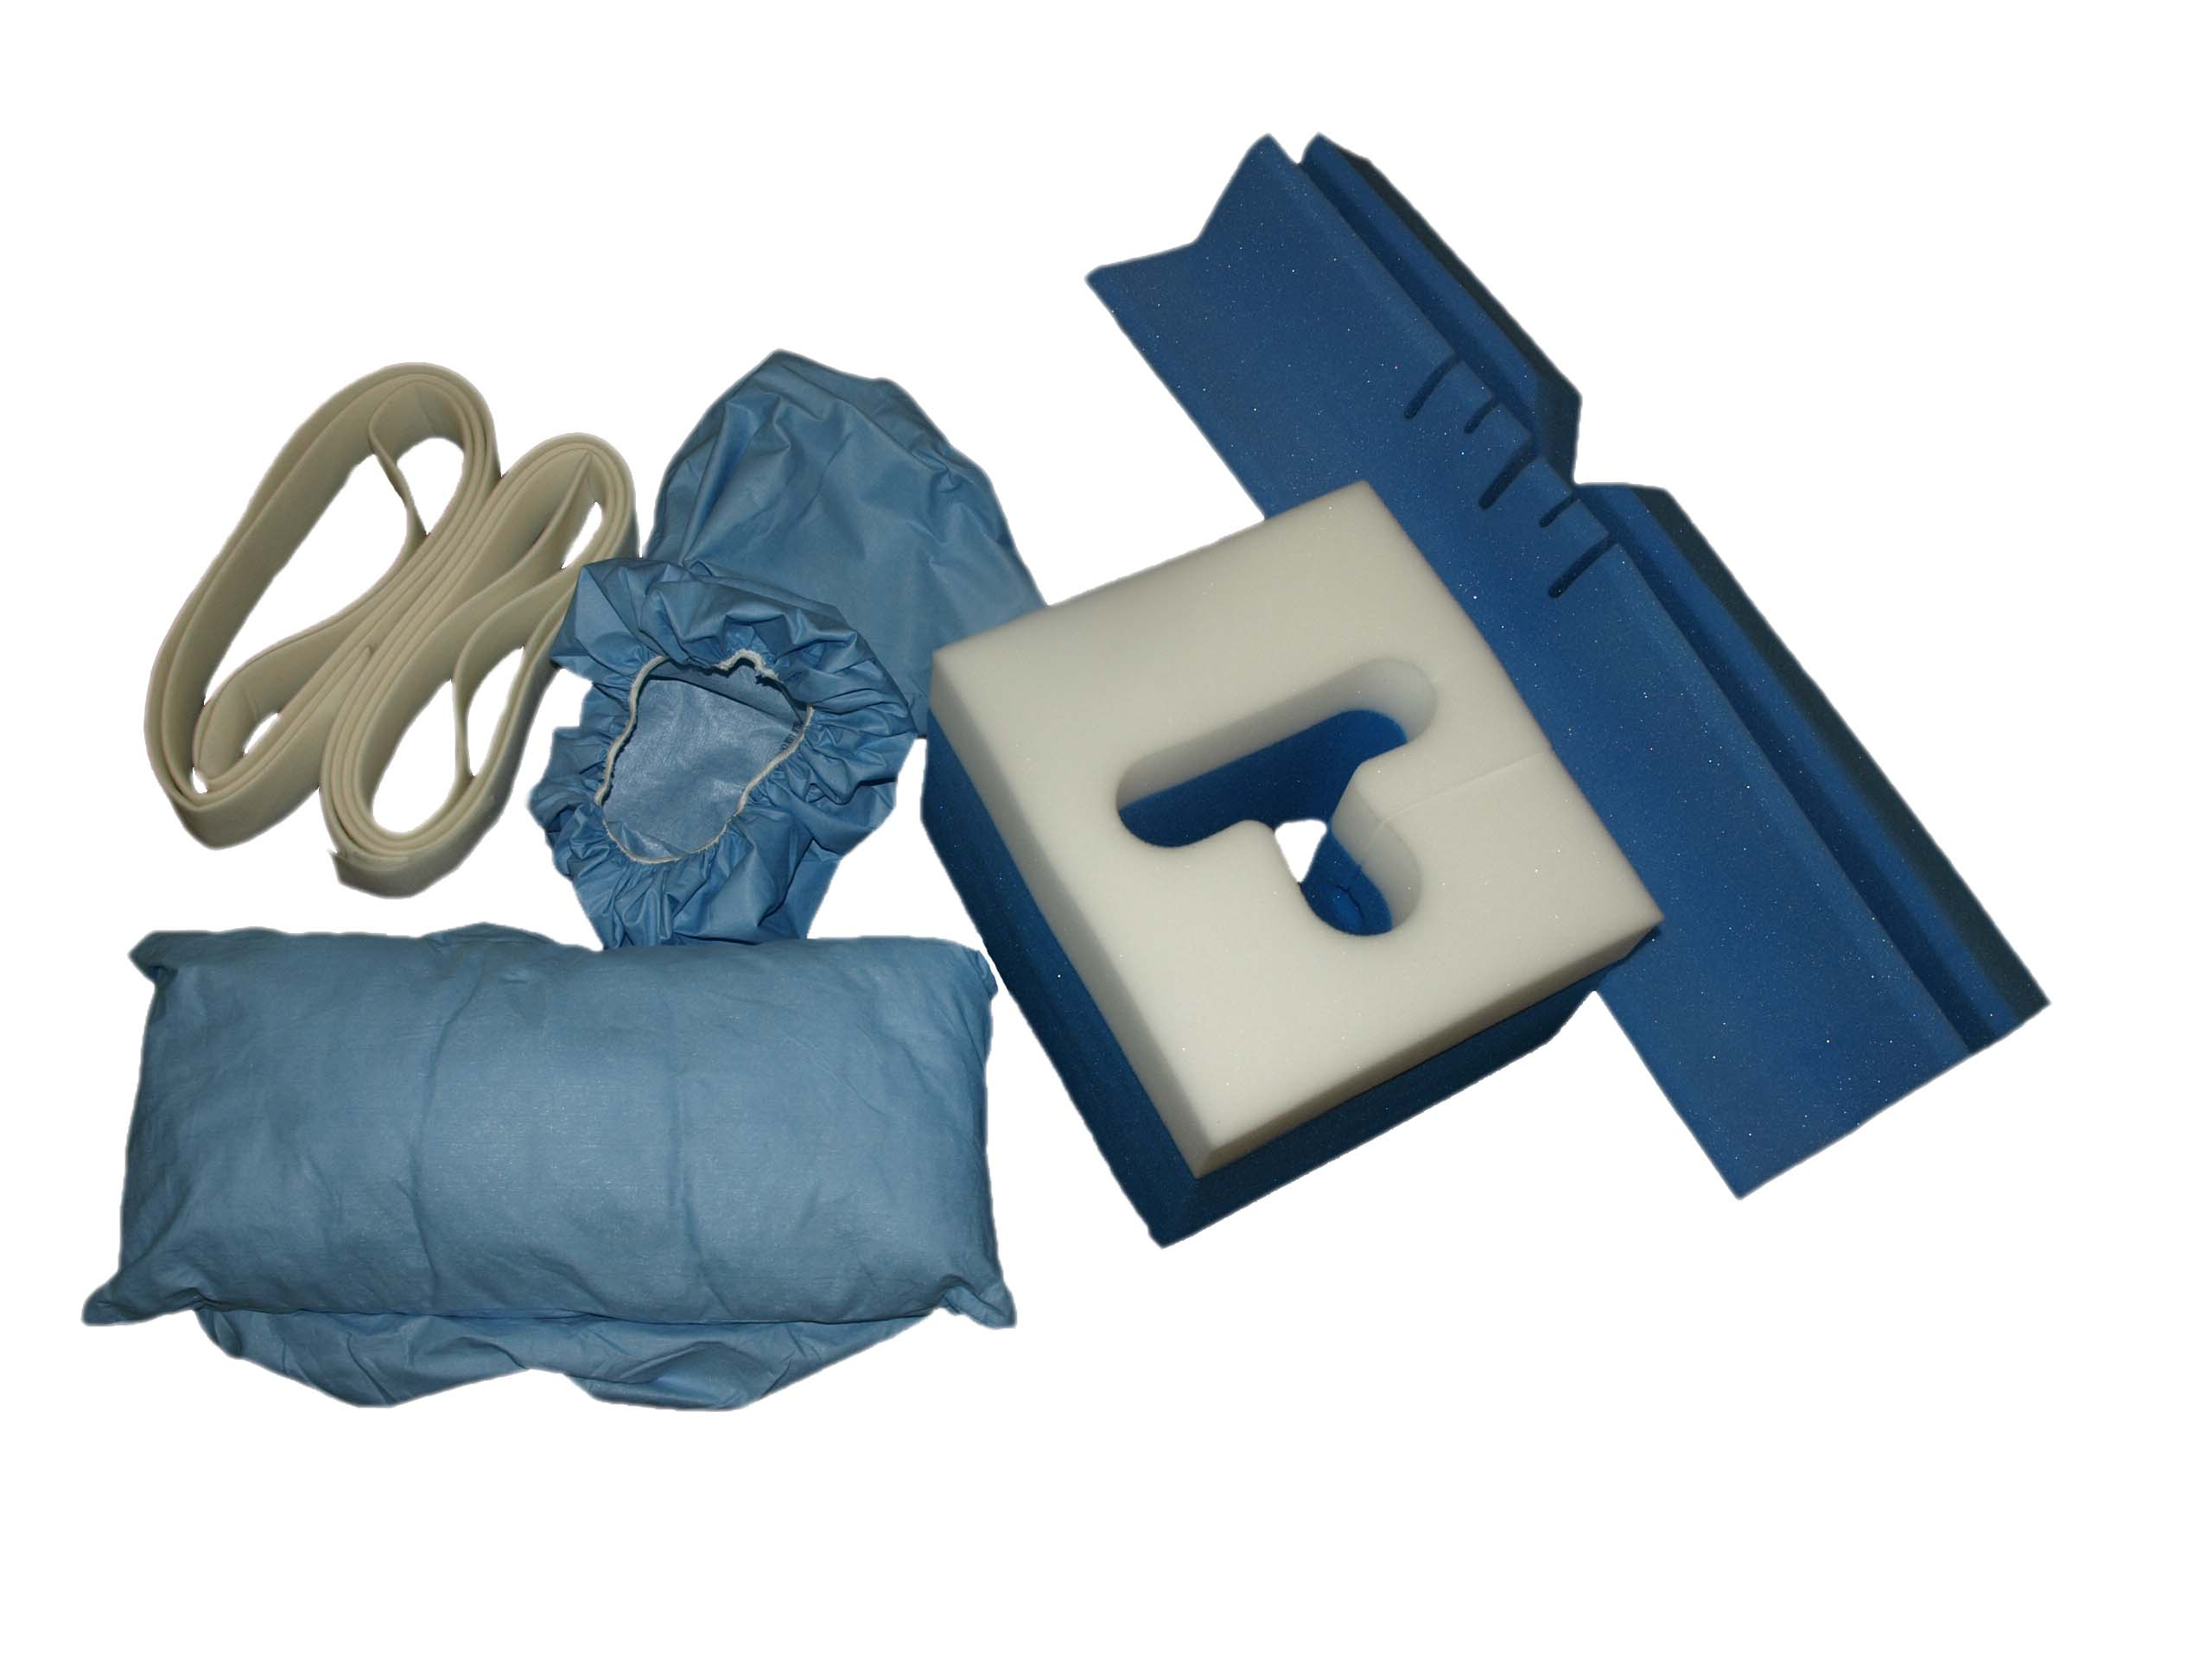 drapes drape surgiedge products surgical consumable